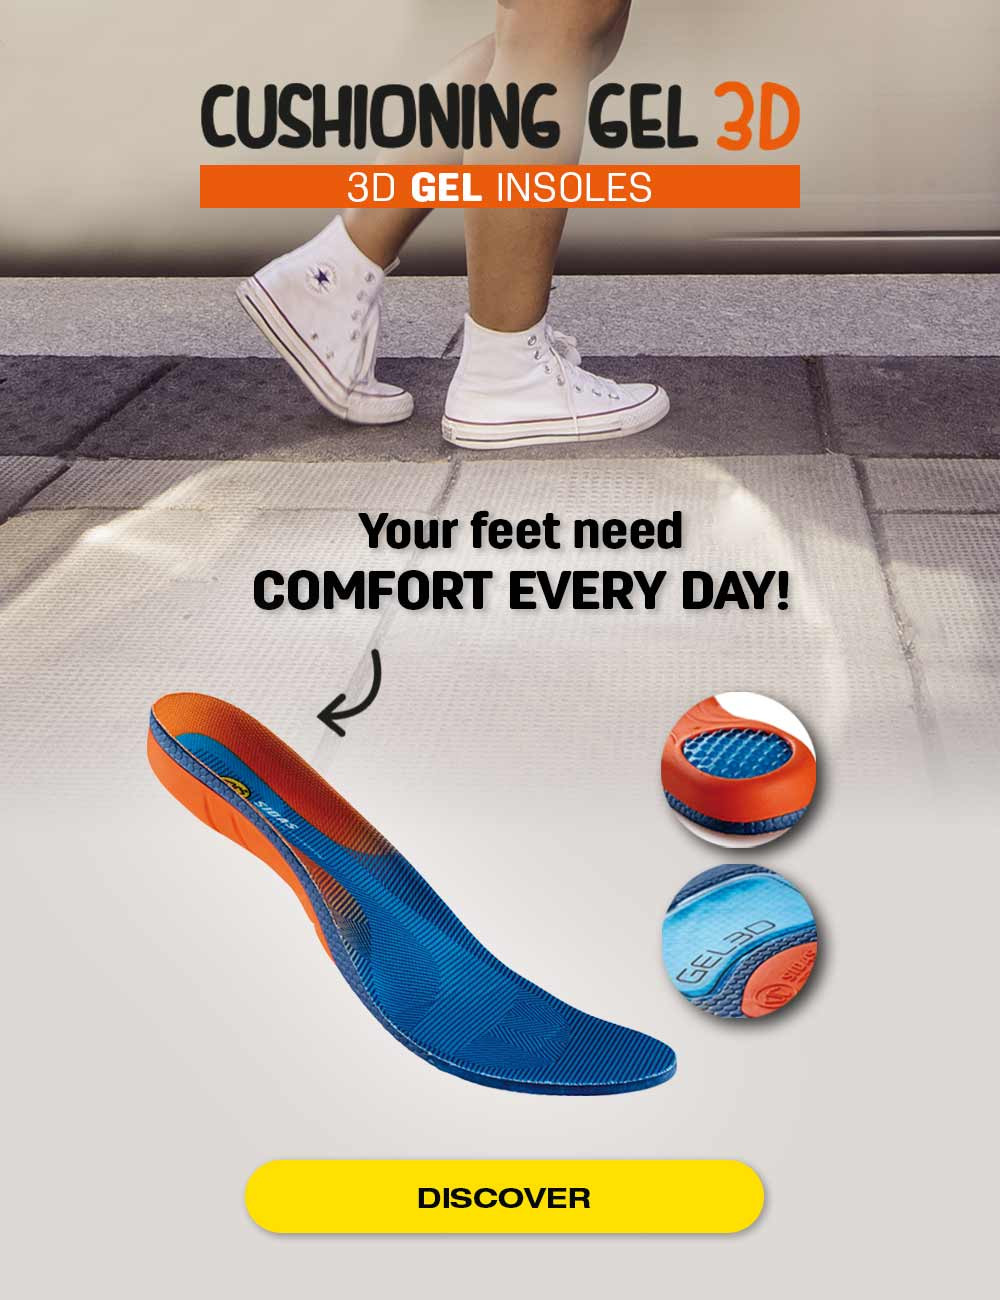 Your feet need comfort every day!